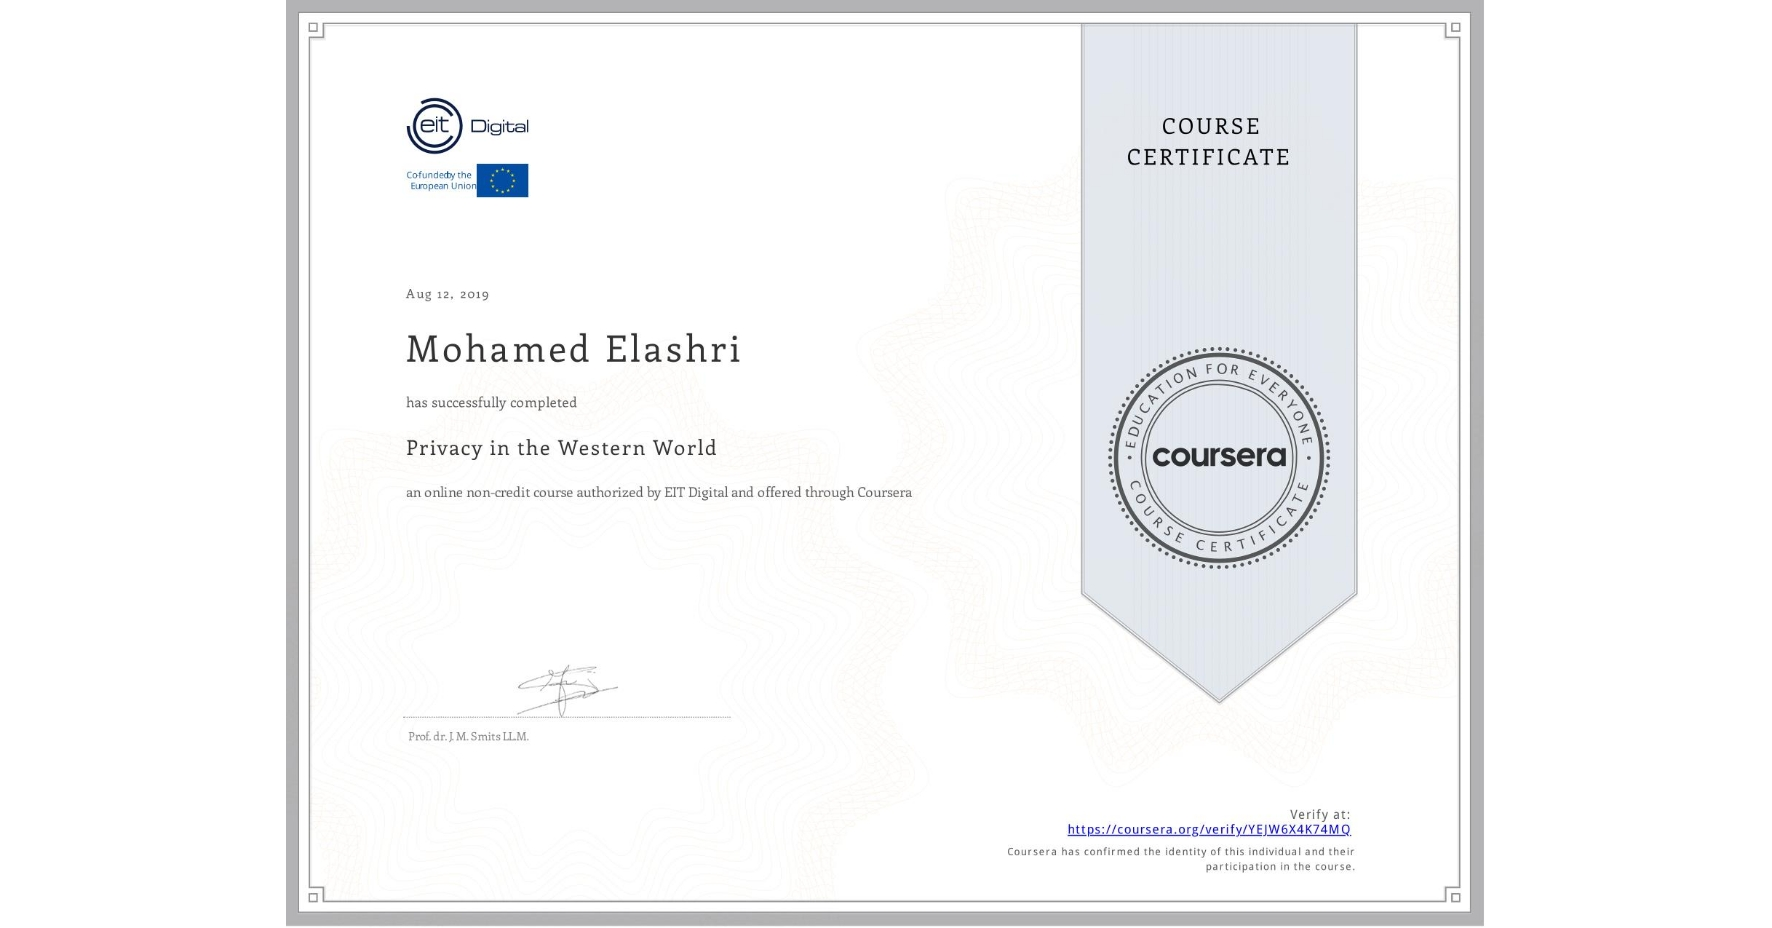 View certificate for Mohamed Elashri, Privacy in the Western World, an online non-credit course authorized by EIT Digital  and offered through Coursera